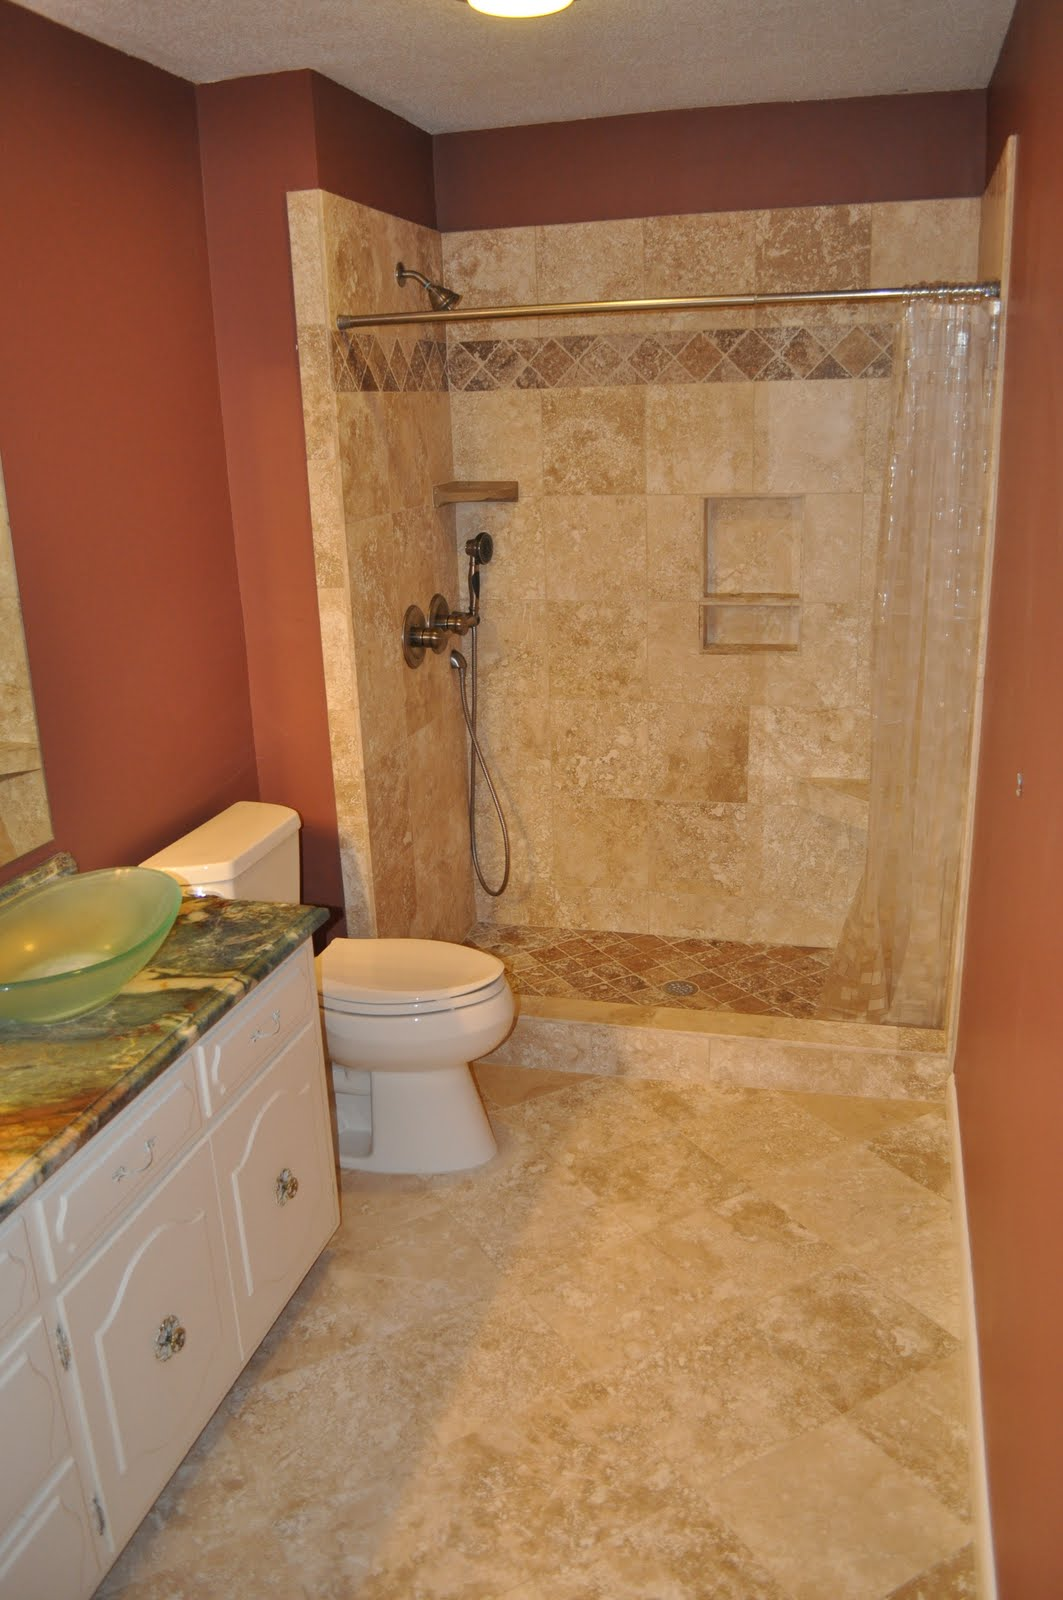 Small Bathroom Remodel Ideas bathroom square yellow wooden laminate waste bin small bathroom remodel ideas on a budget white Bathroom Remodel Cost And Considerationscolella Construction Inc Cayman Painters Islands Bath Reno